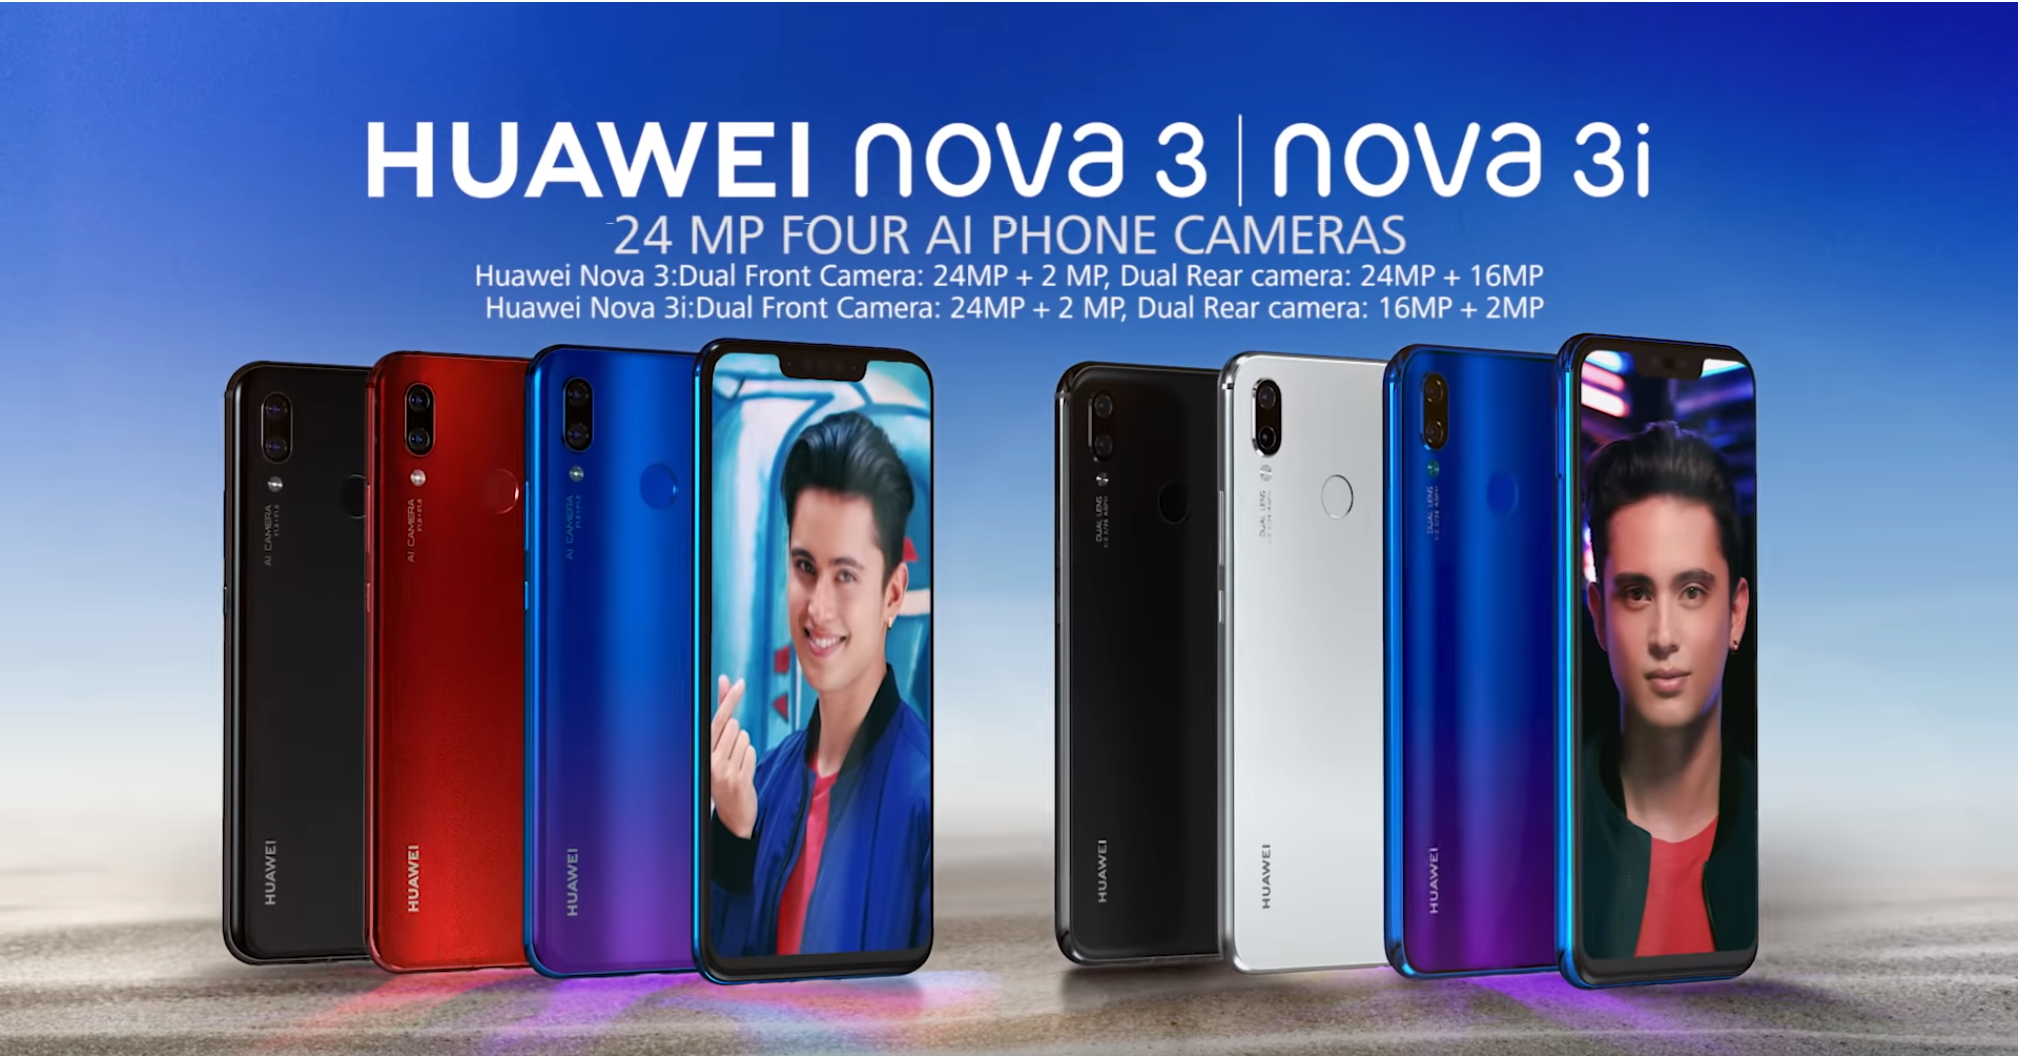 Special deals for Huawei Nova 3, 3i until August 31 - Speed